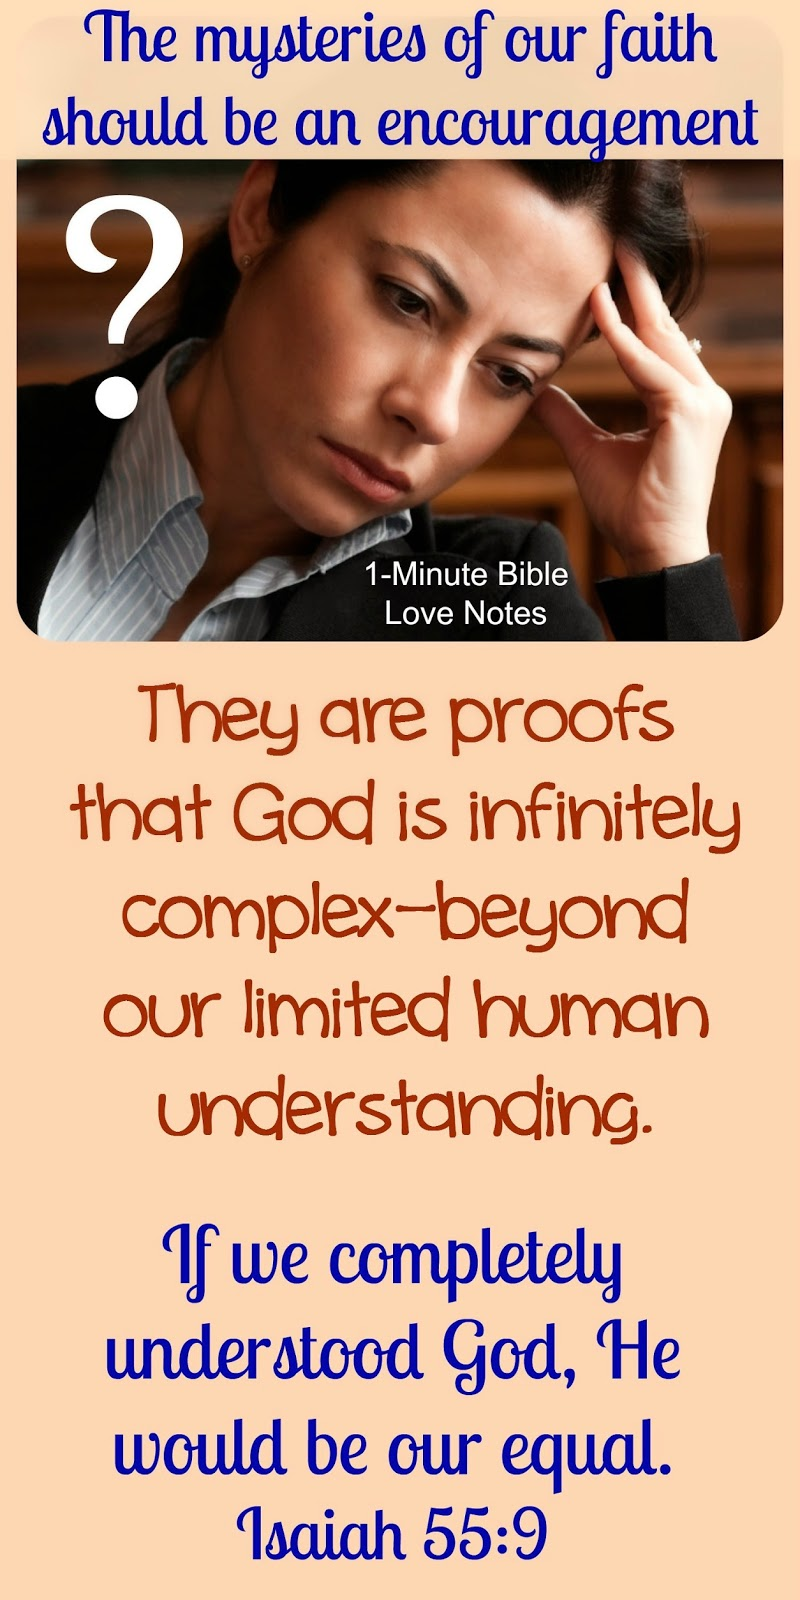 Romans 11:33, mysteries of God, God cannot be fully understood